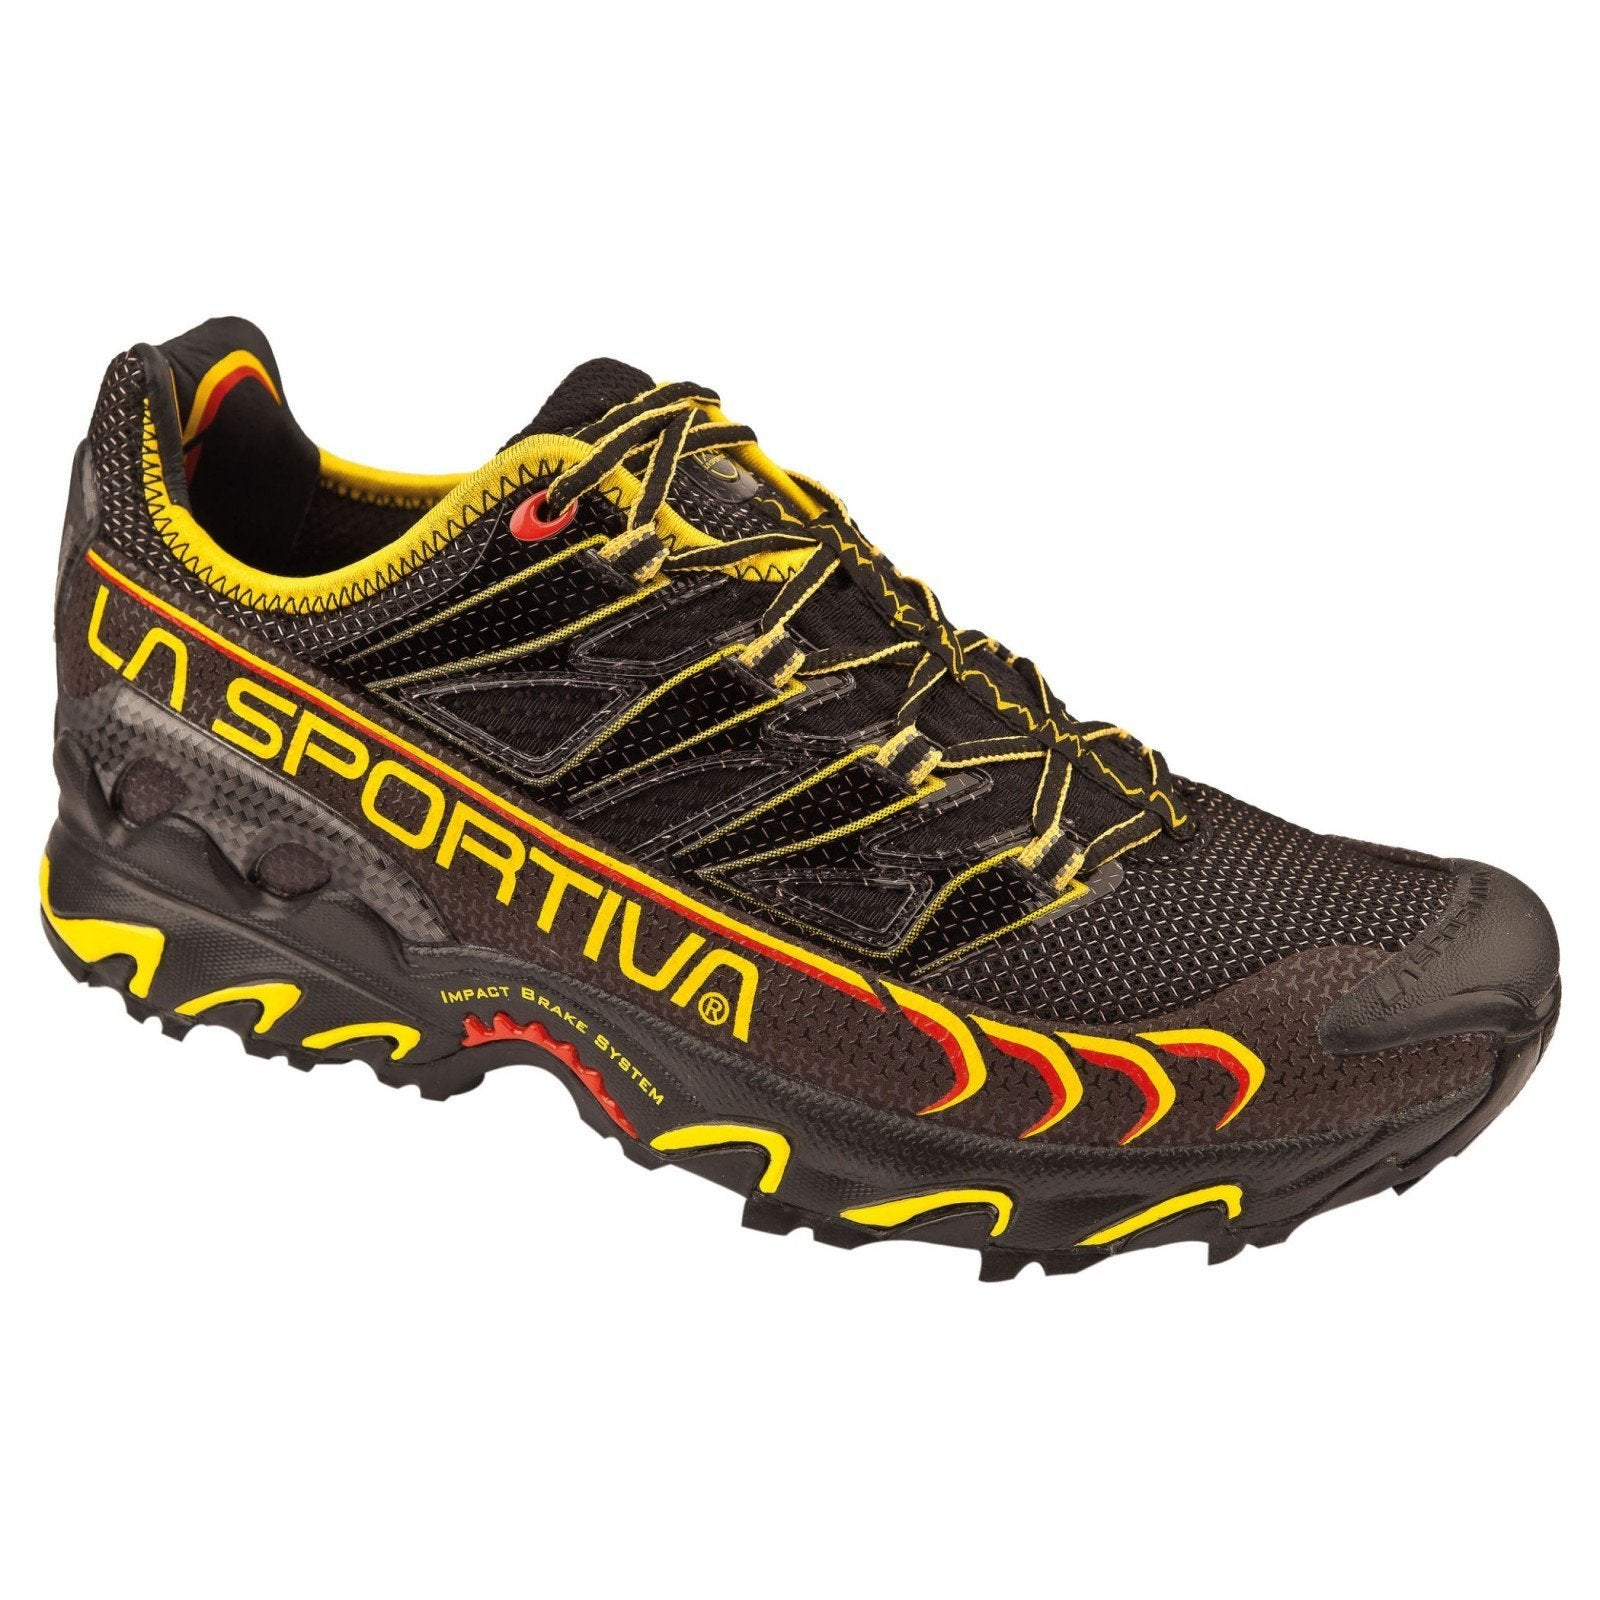 La Sportiva Ultra Raptor running shoe, outer side view in Black/Yellow colours